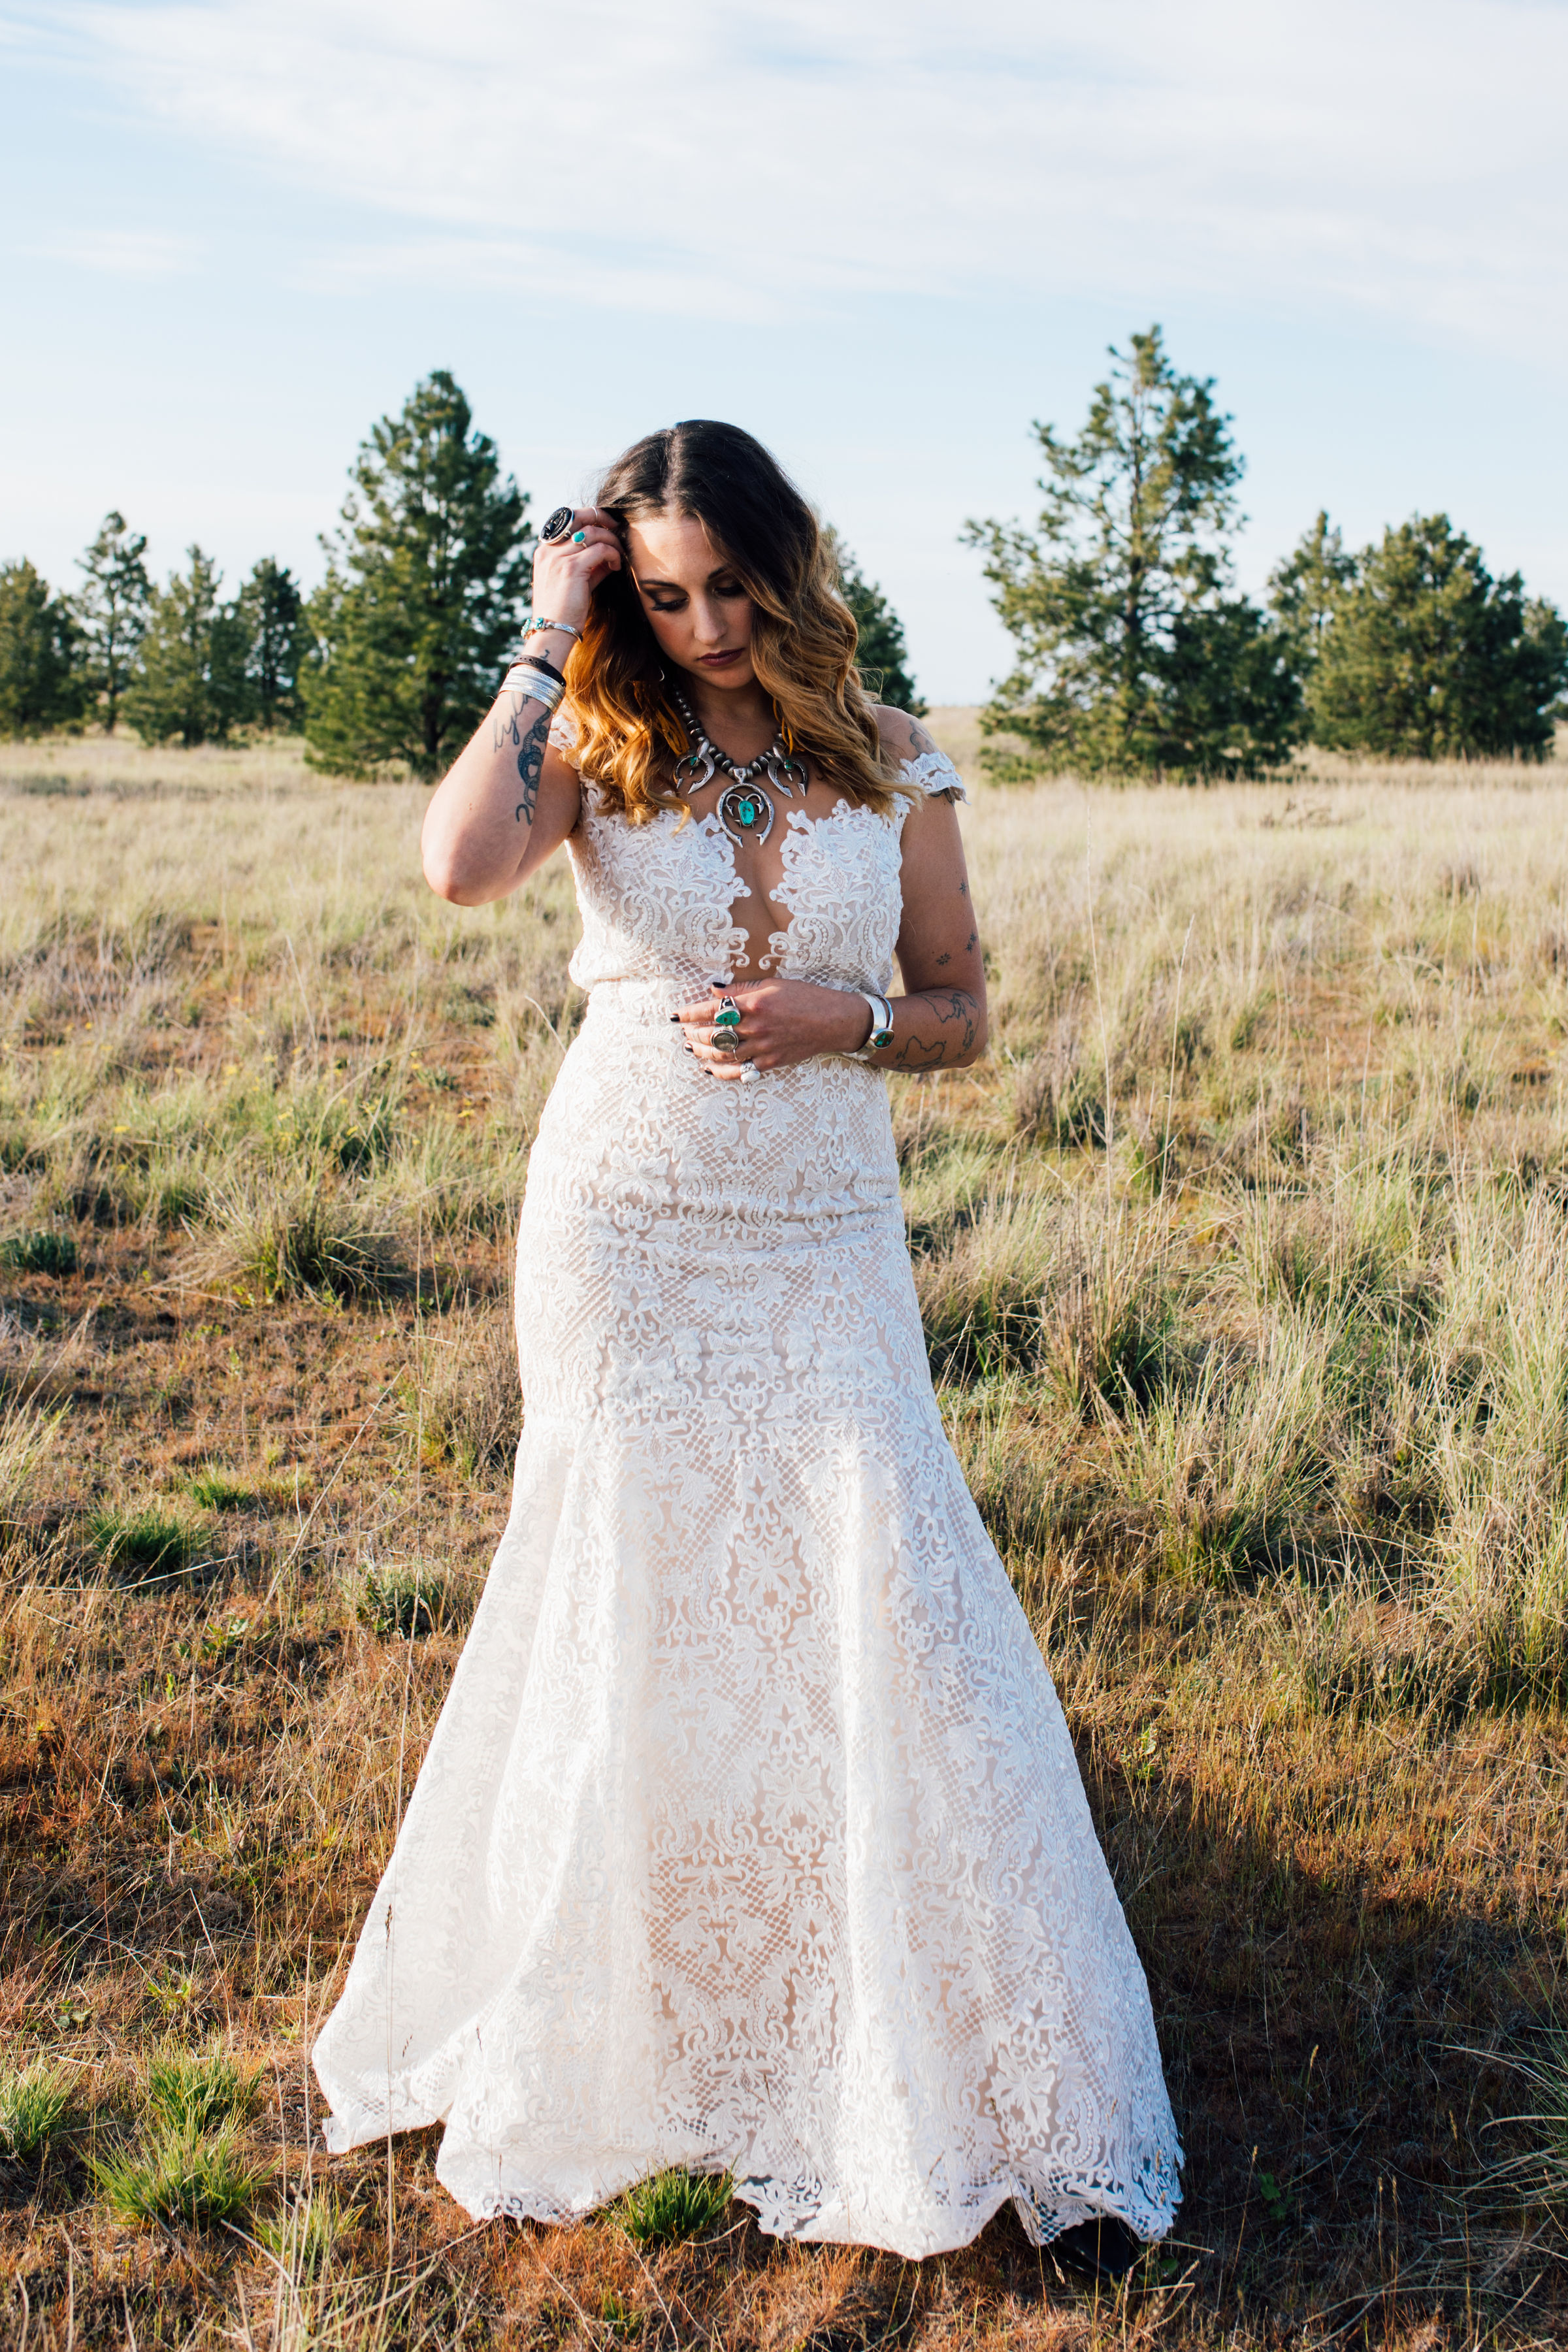 cool elopement spokane wedding dress bride field trees PNW lace